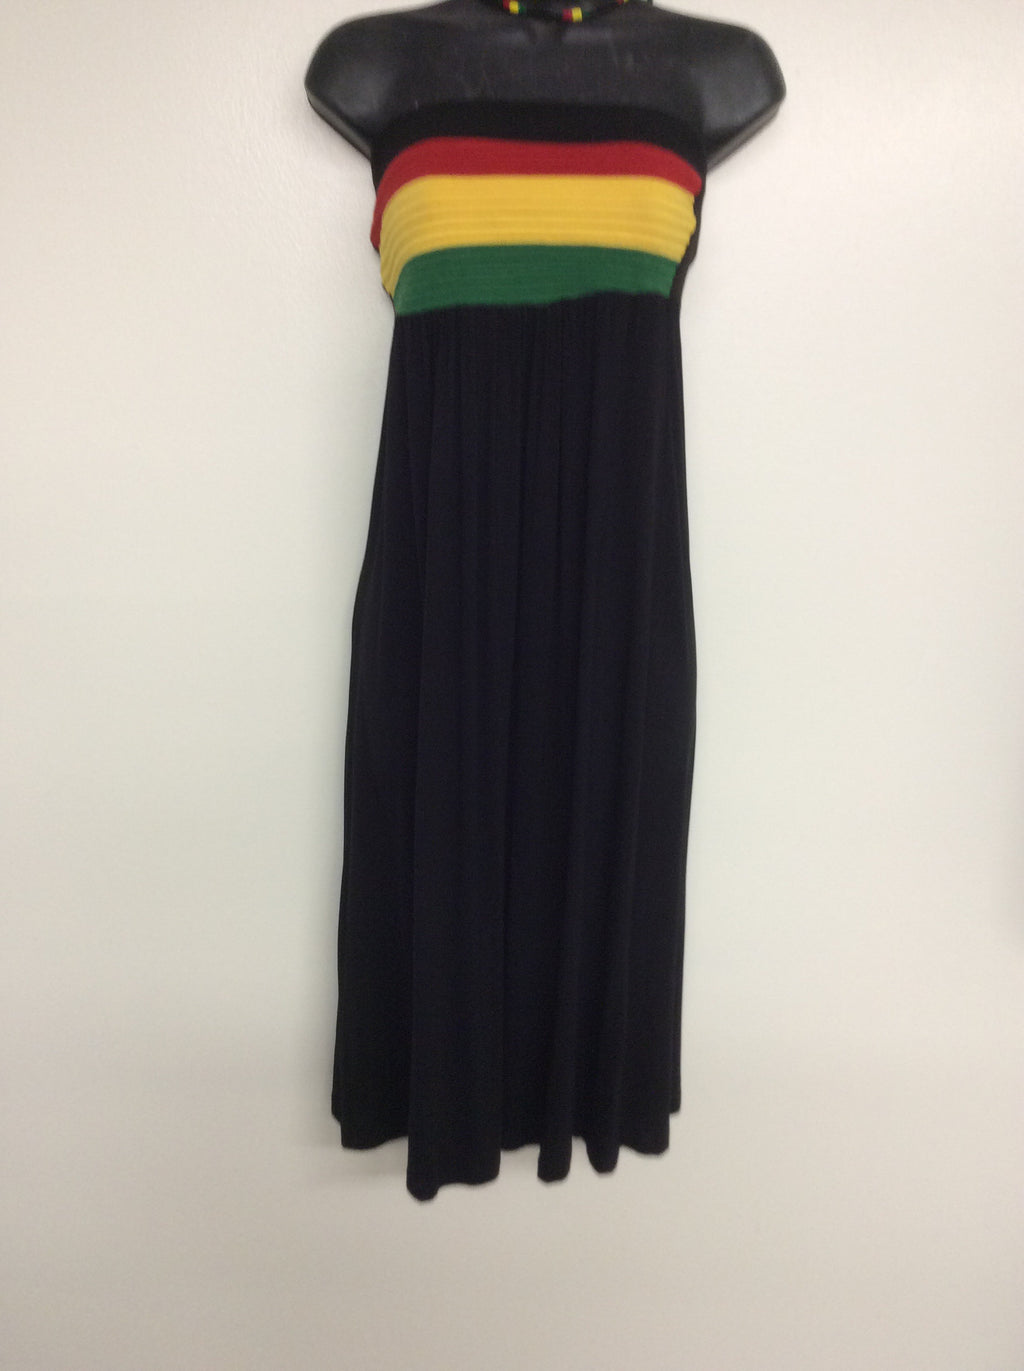 Rastawear Collection Spandex short dress.